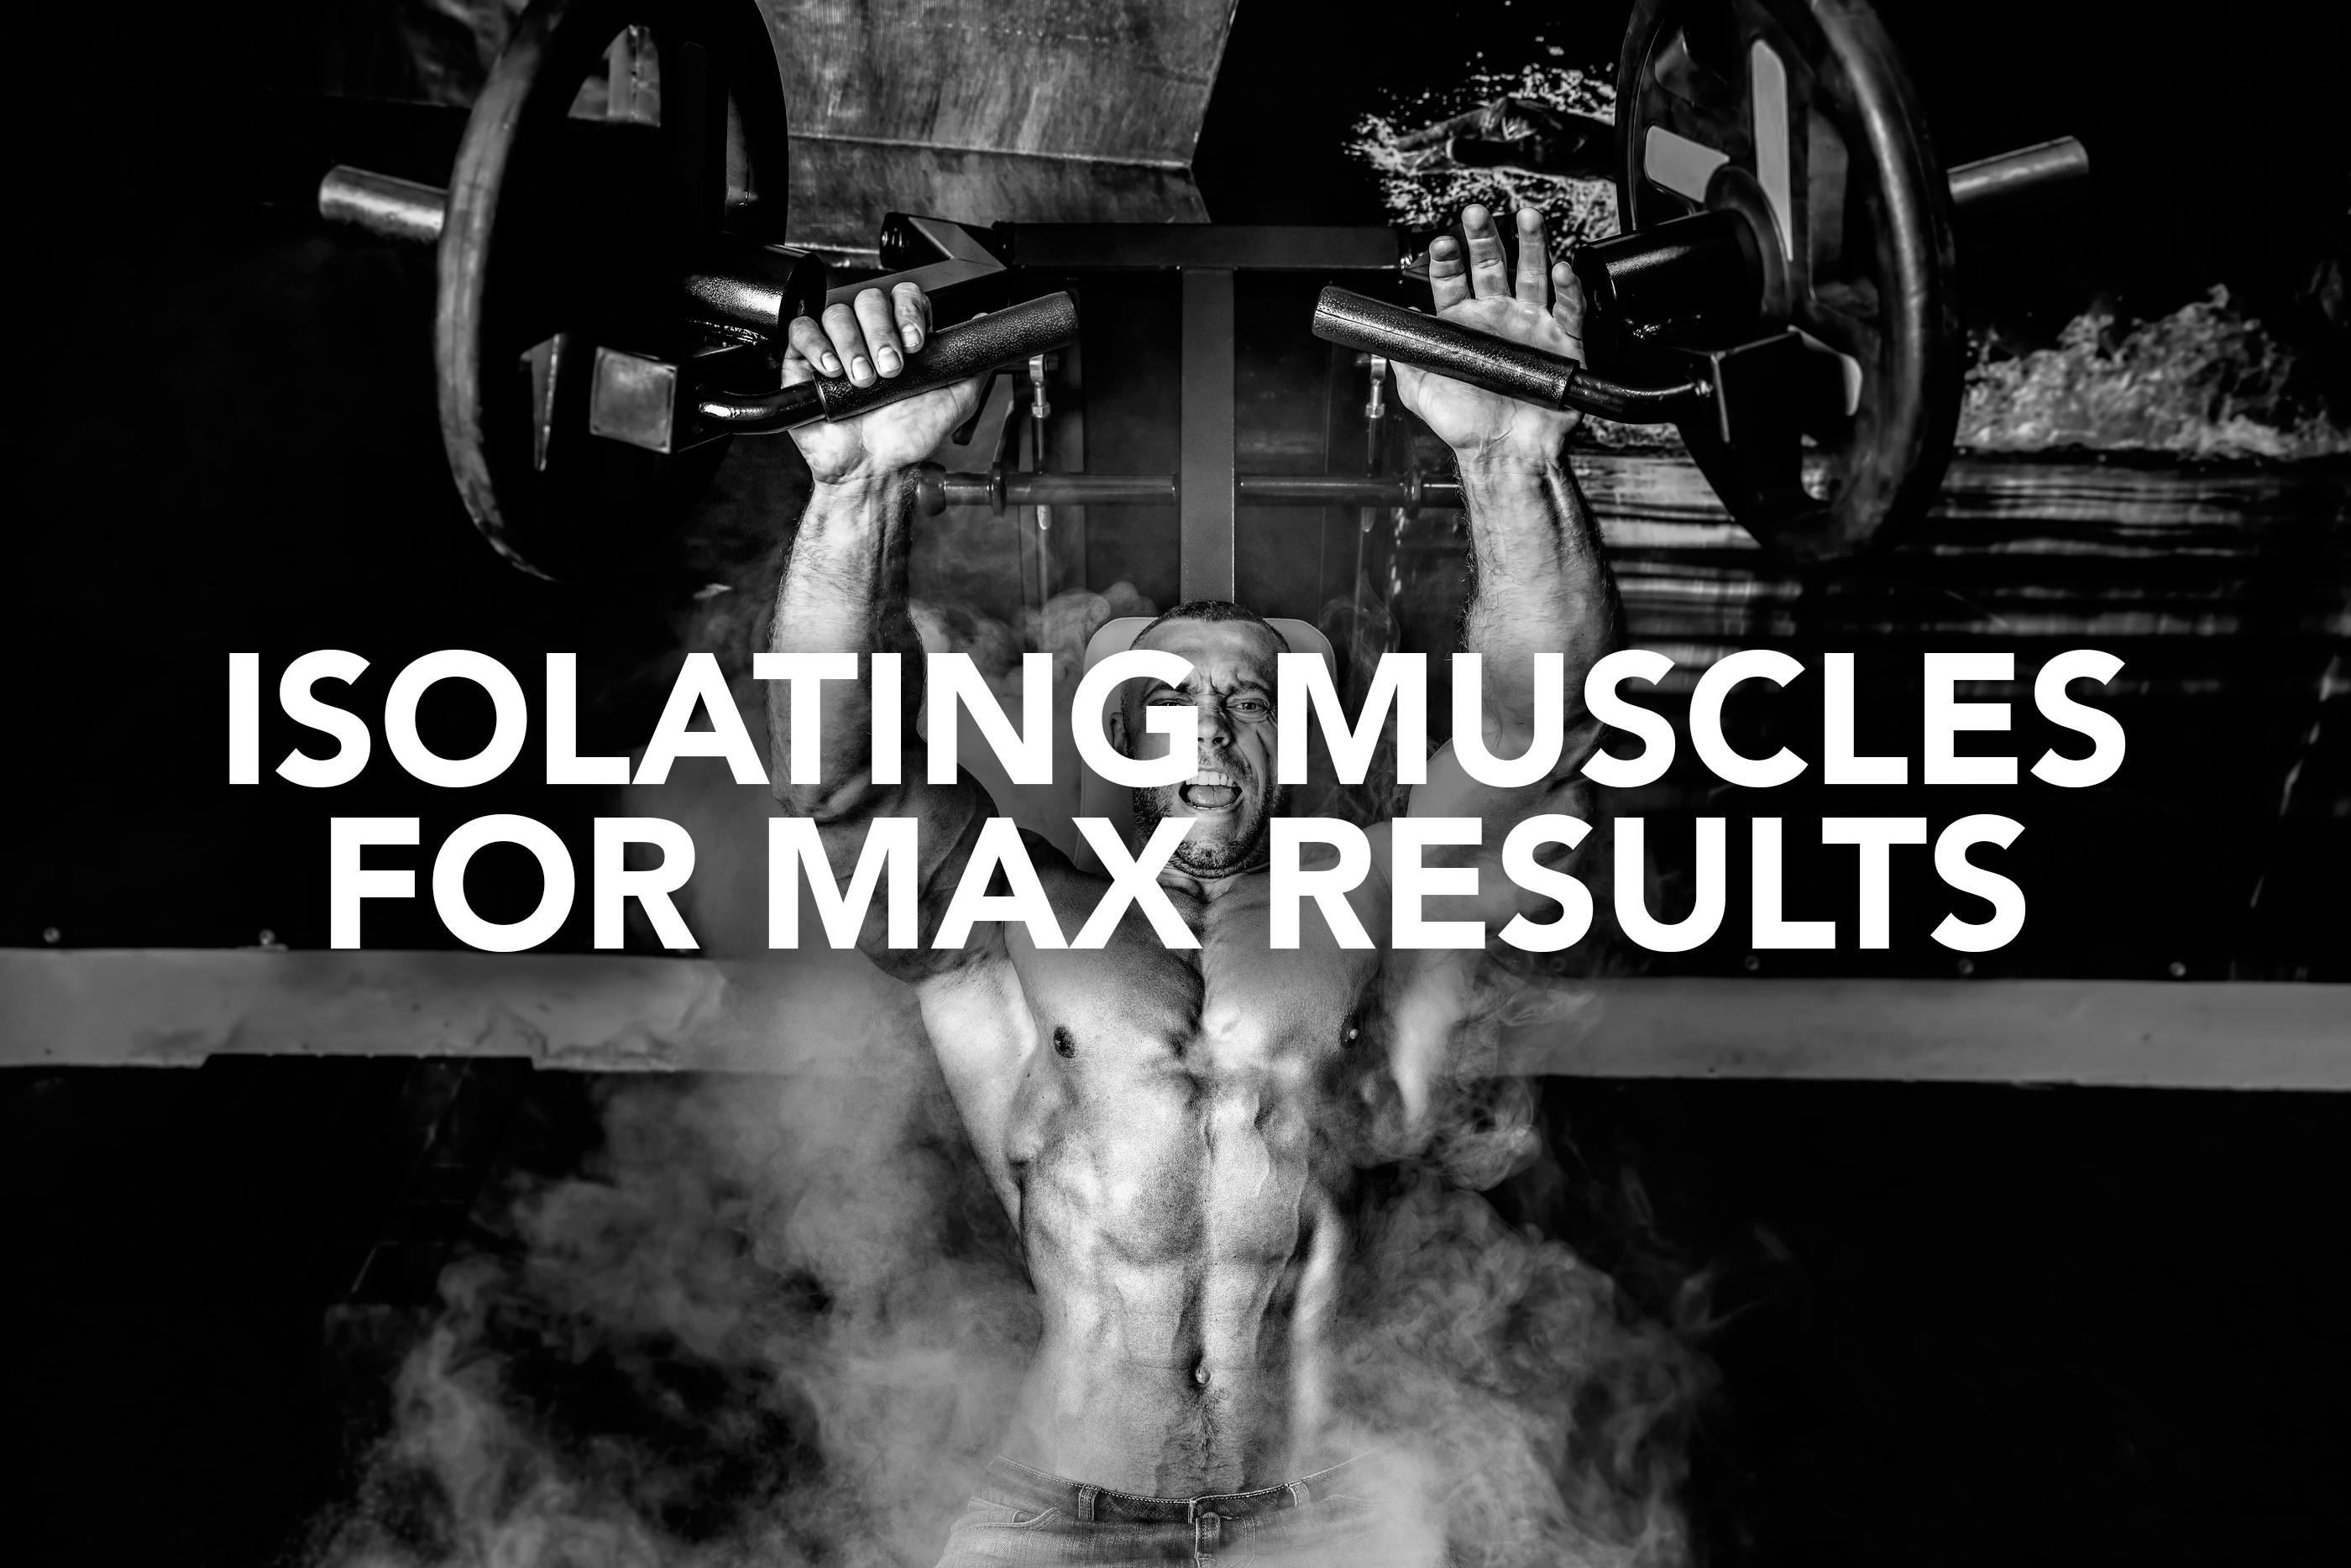 Isolating Muscles for Max Results